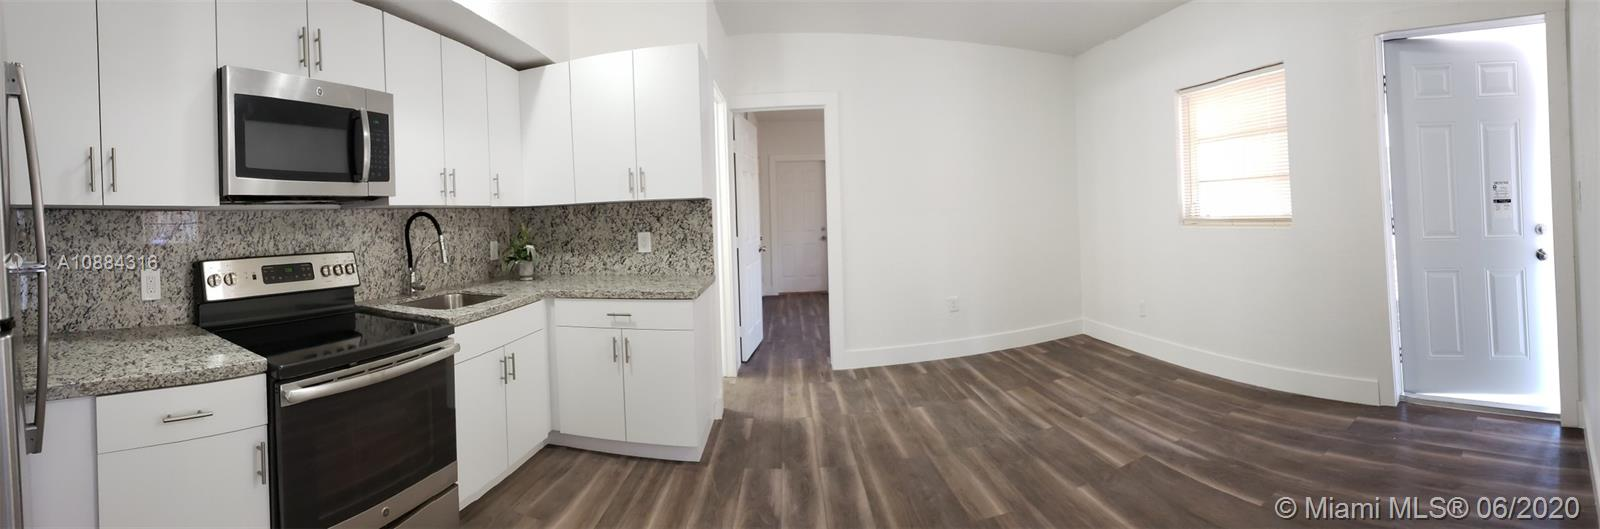 2600 32nd ave- miami-fl-33133-a10884316-Pic17